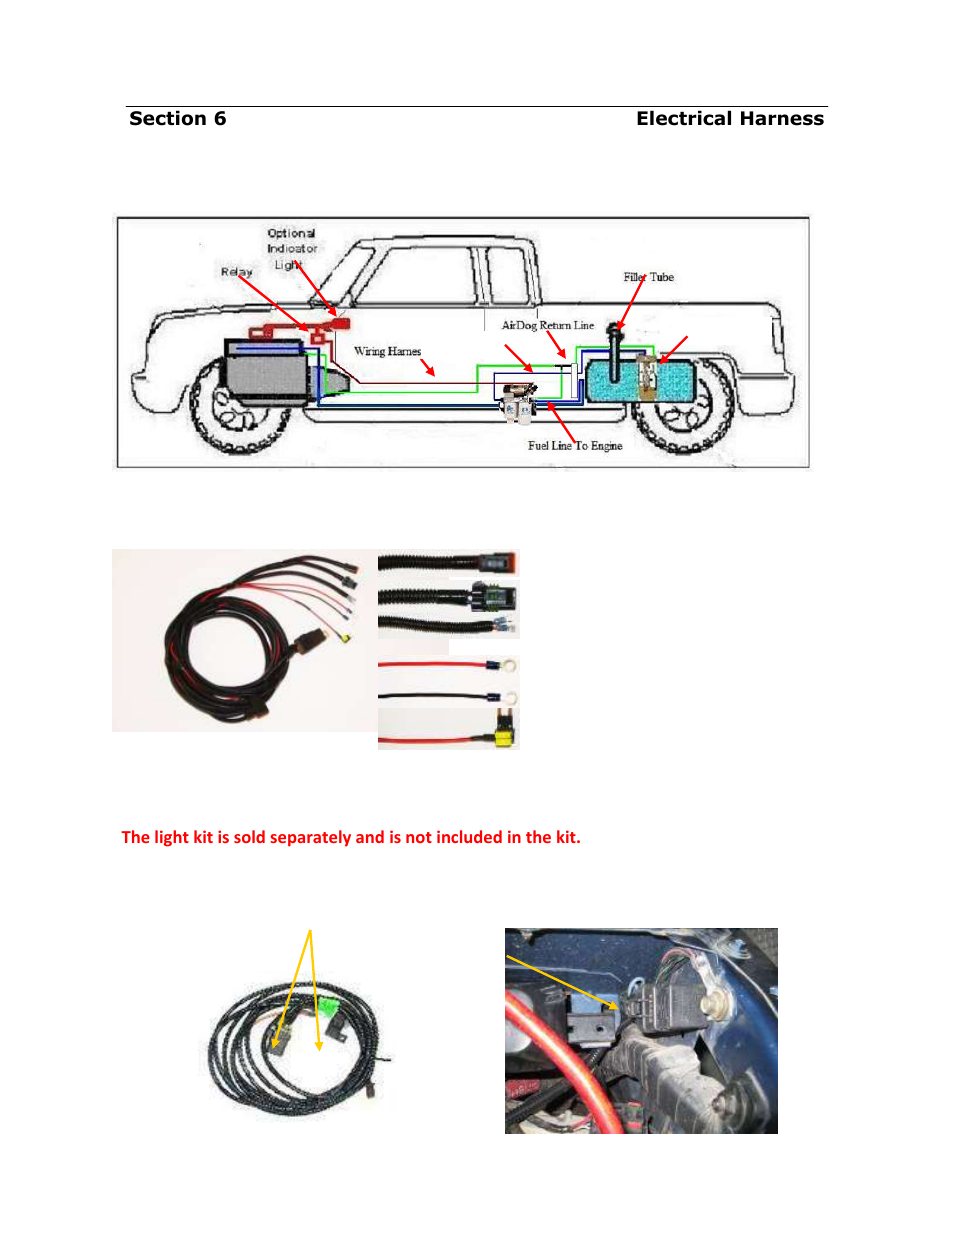 The airdog, Pureflow airdog airdog, Wiring diagram (in red) | PureFlow  AirDog DF-200 - GM Duramax 2011-2014 User Manual | Page 15 / 24